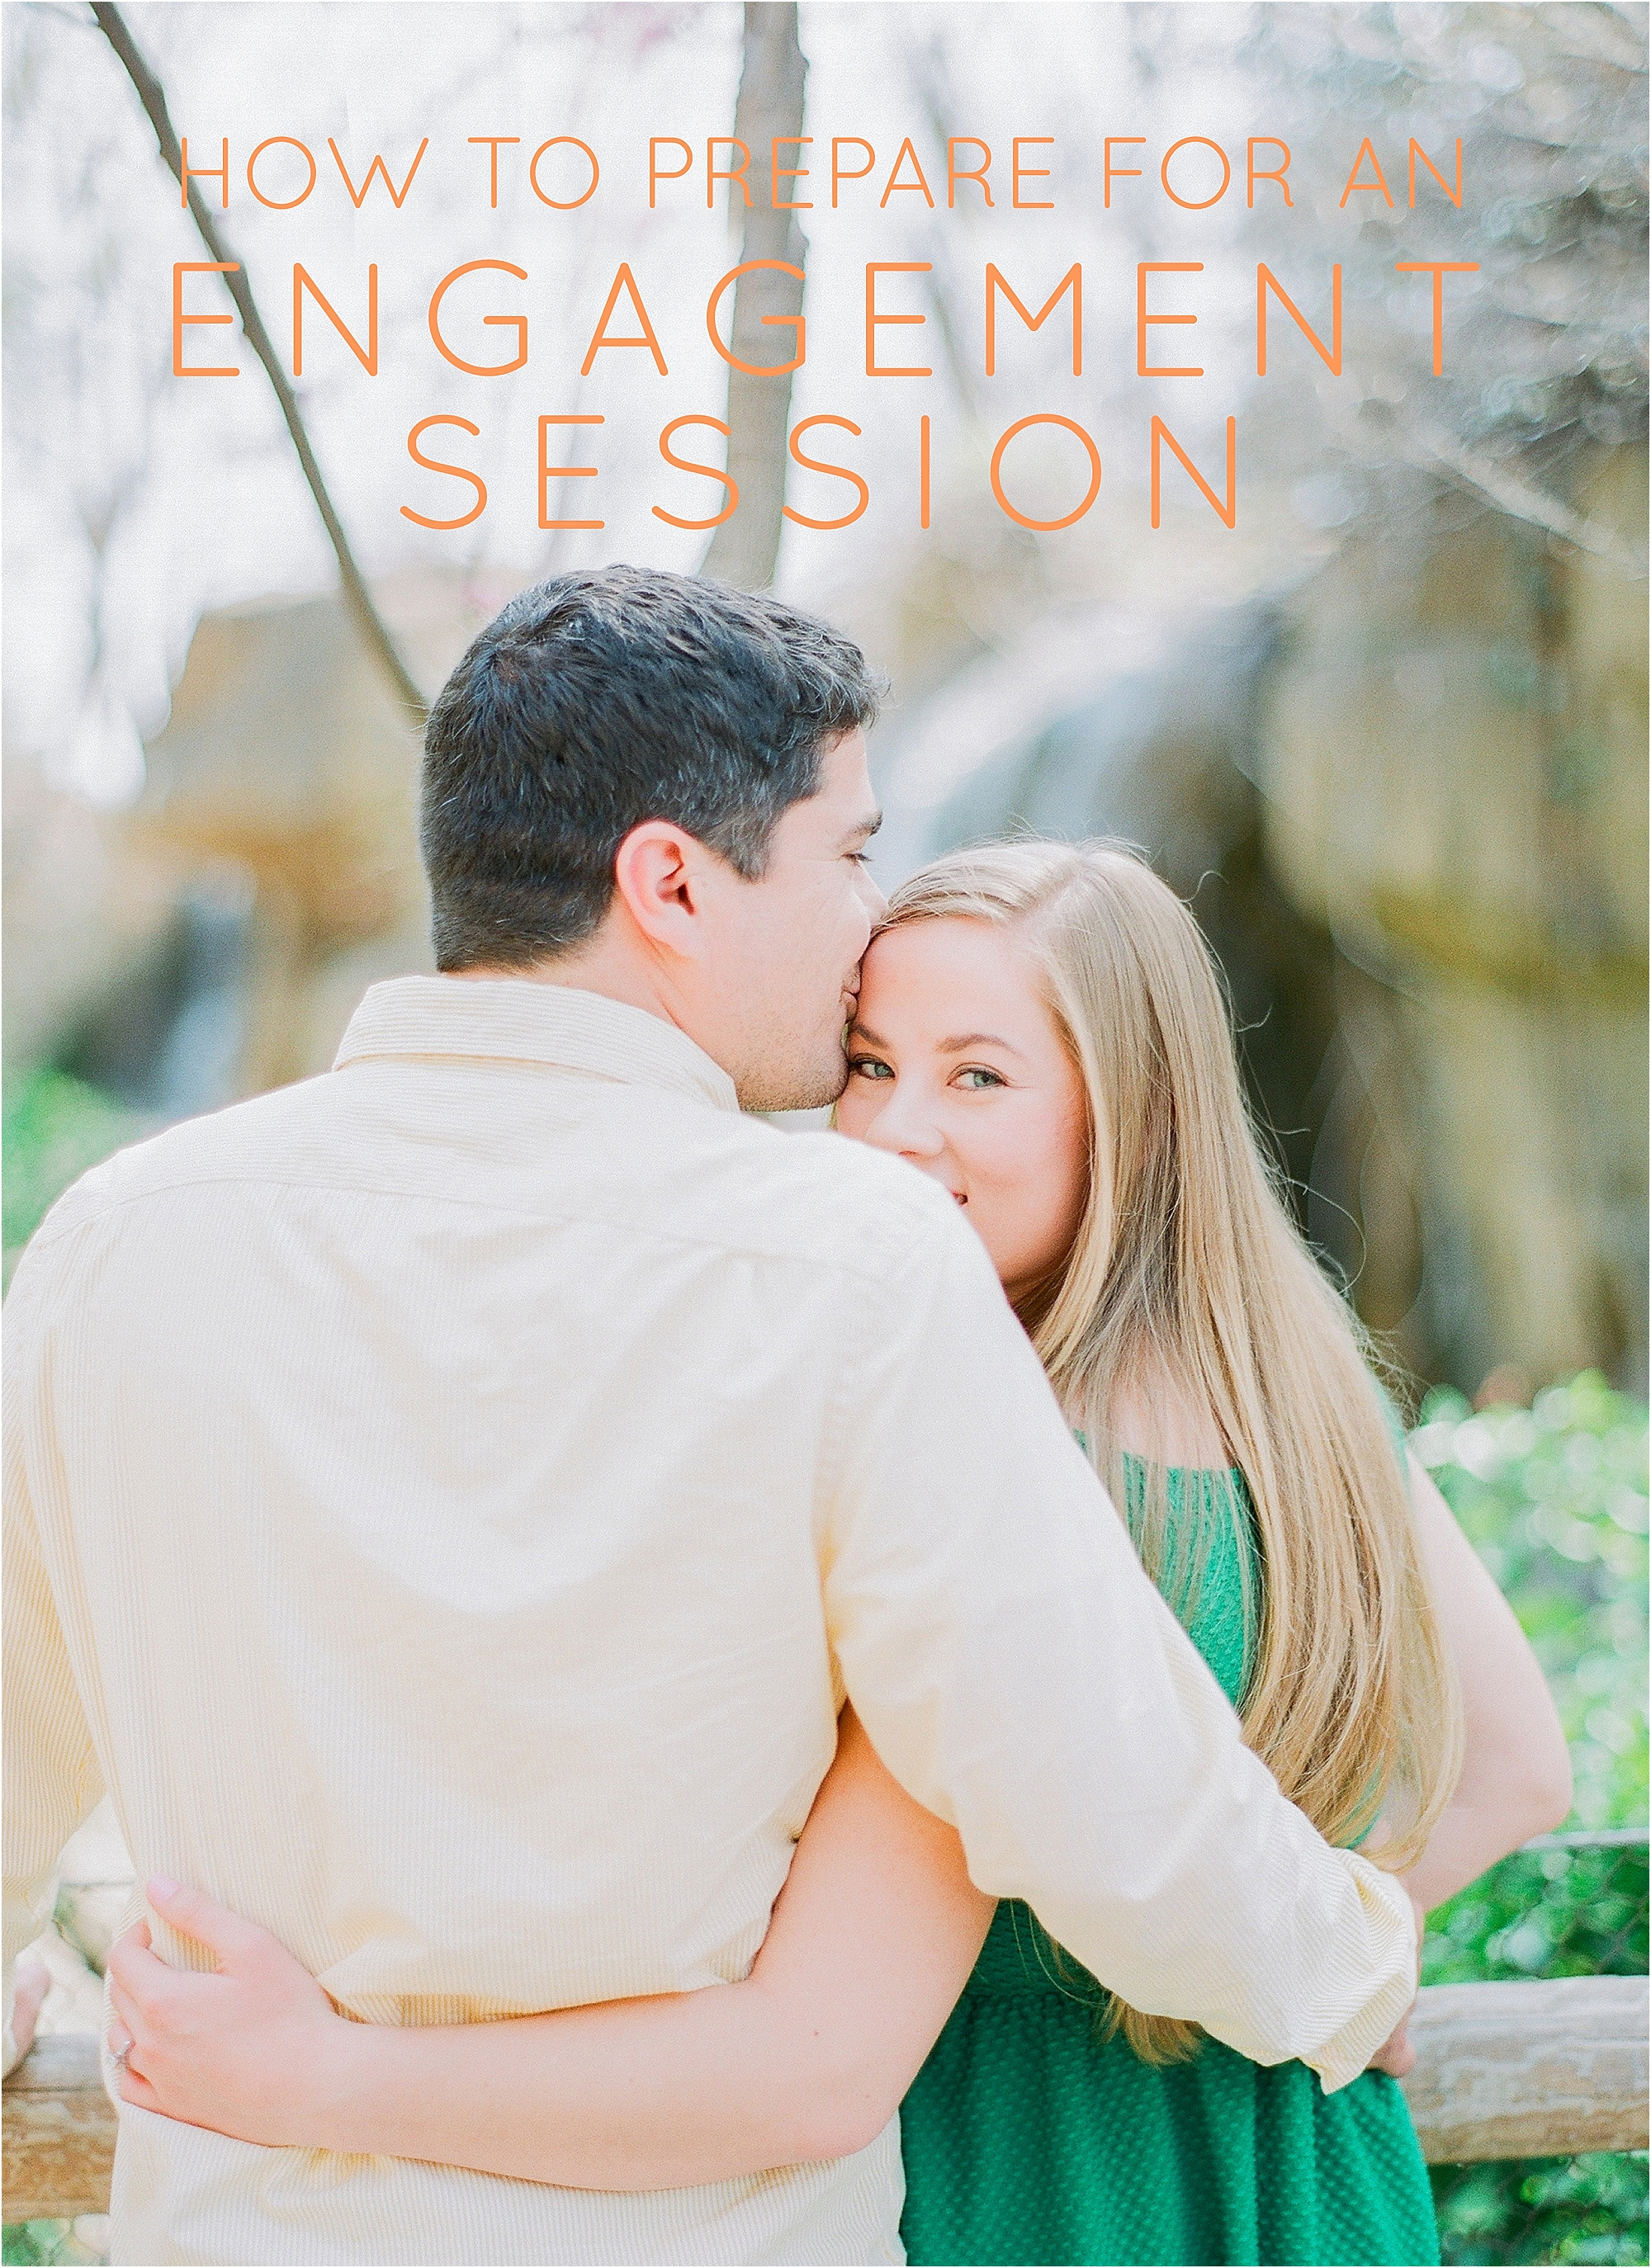 How to Prepare for an Engagement Session - The Jordan Brittley Blog